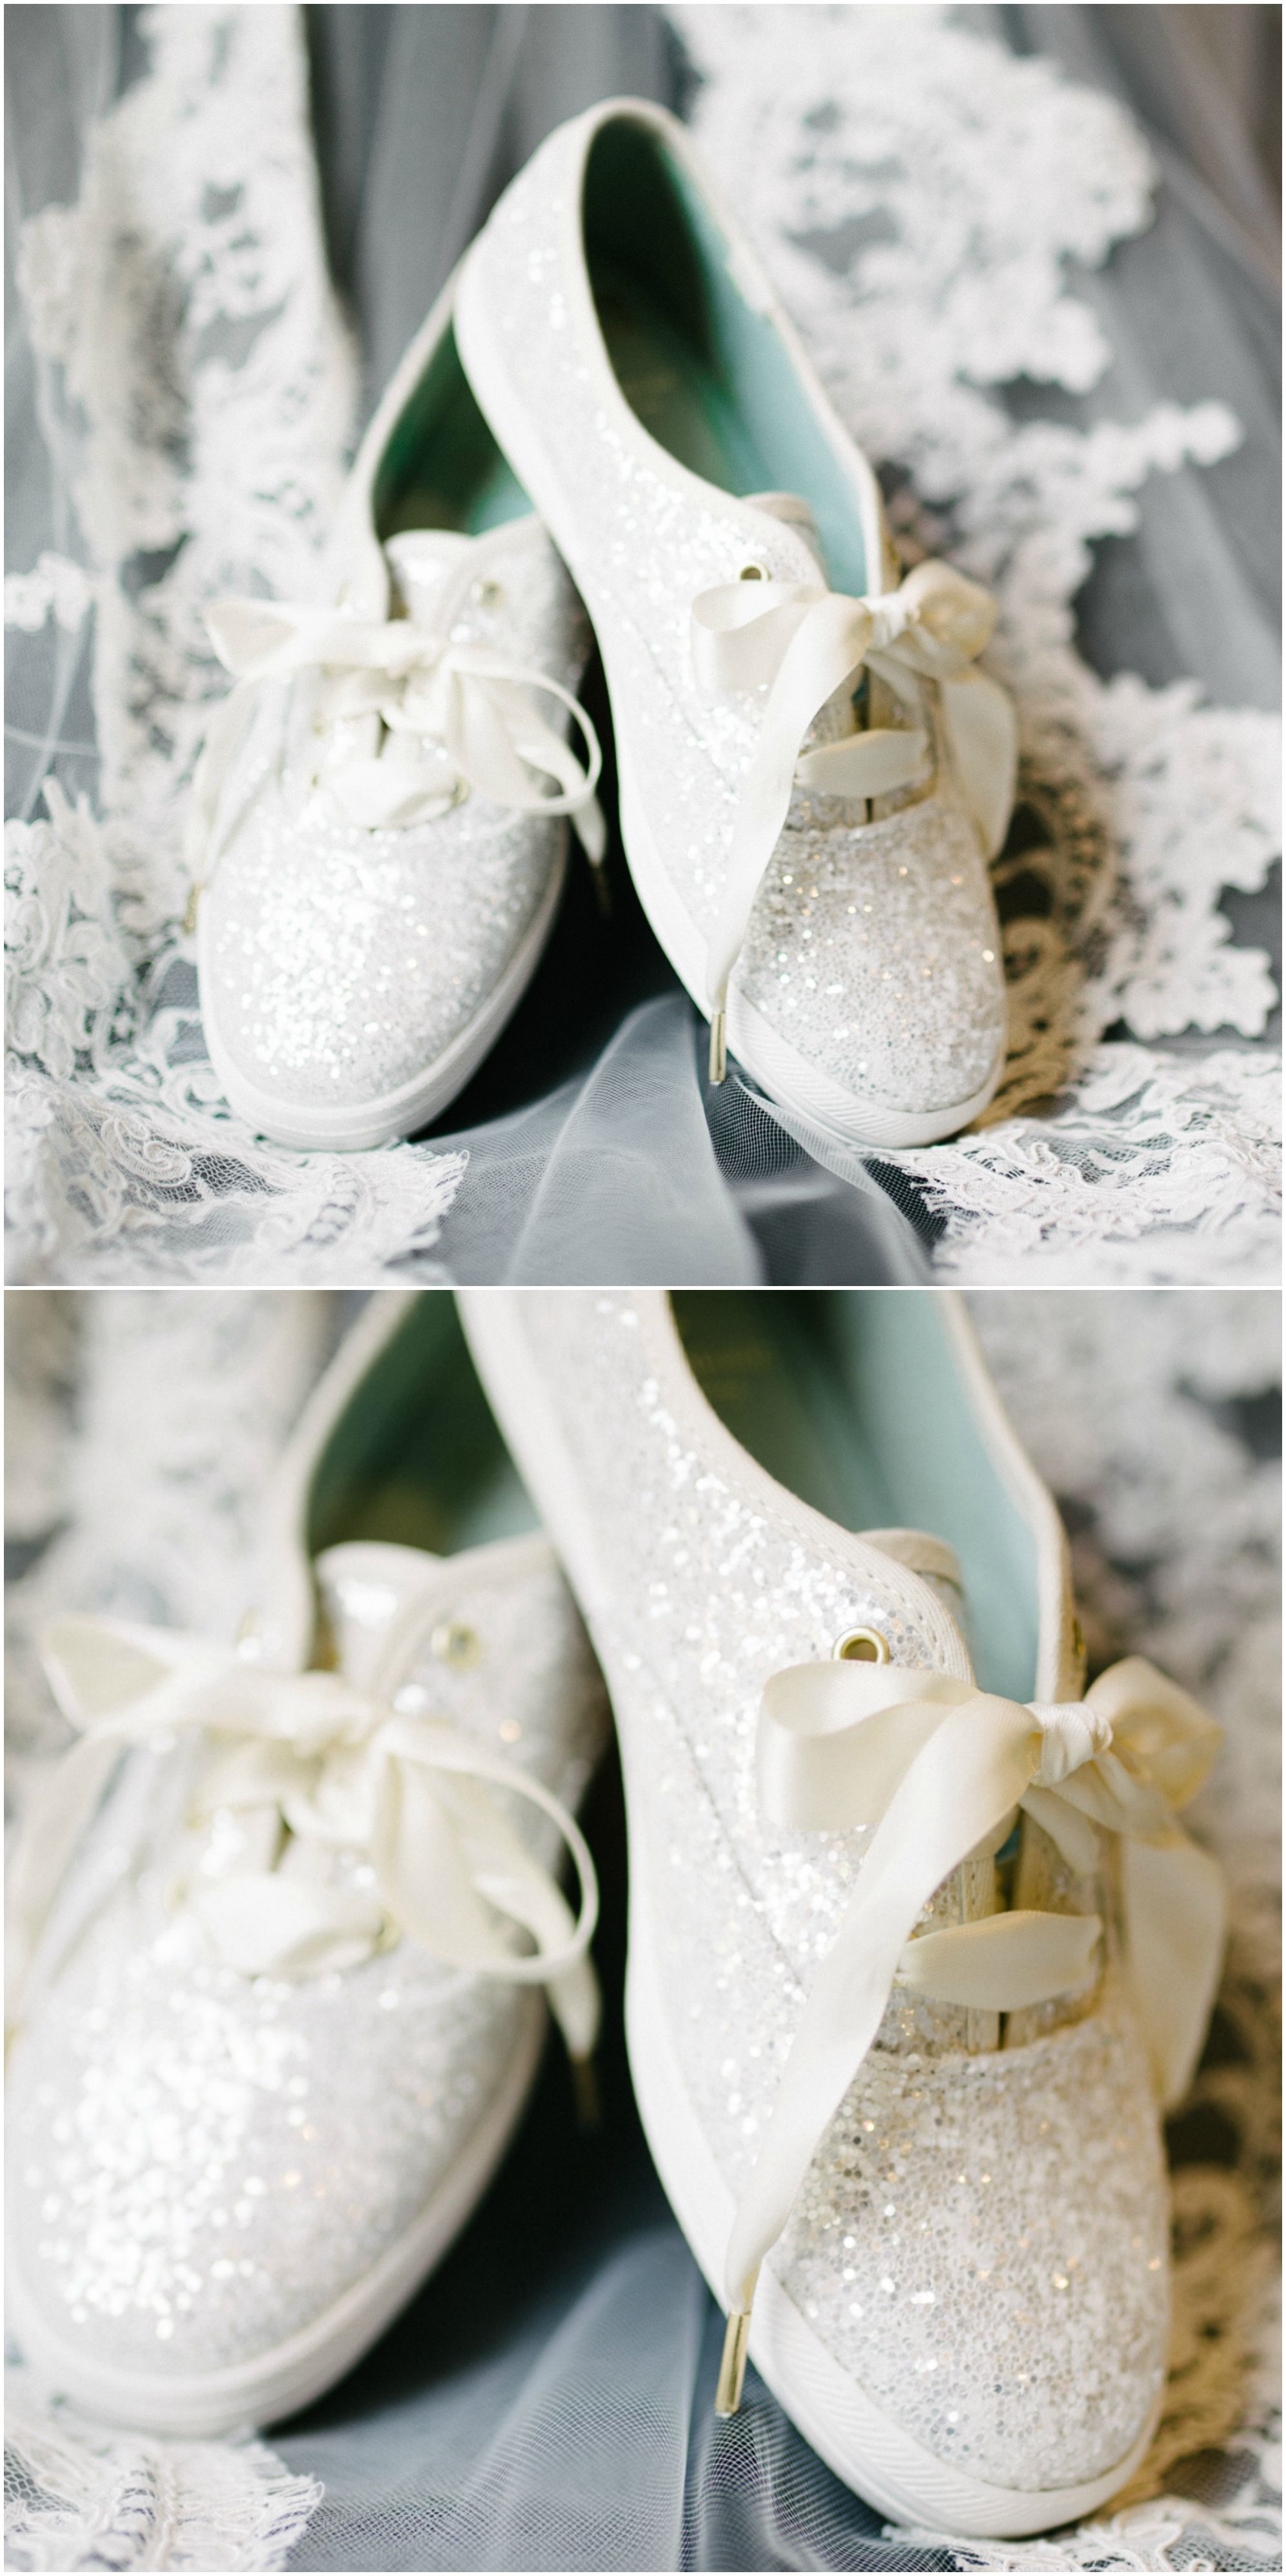 Sparkly Tennis Shoes Comfortable Bridal Kate Spade White Glitter Thankfully